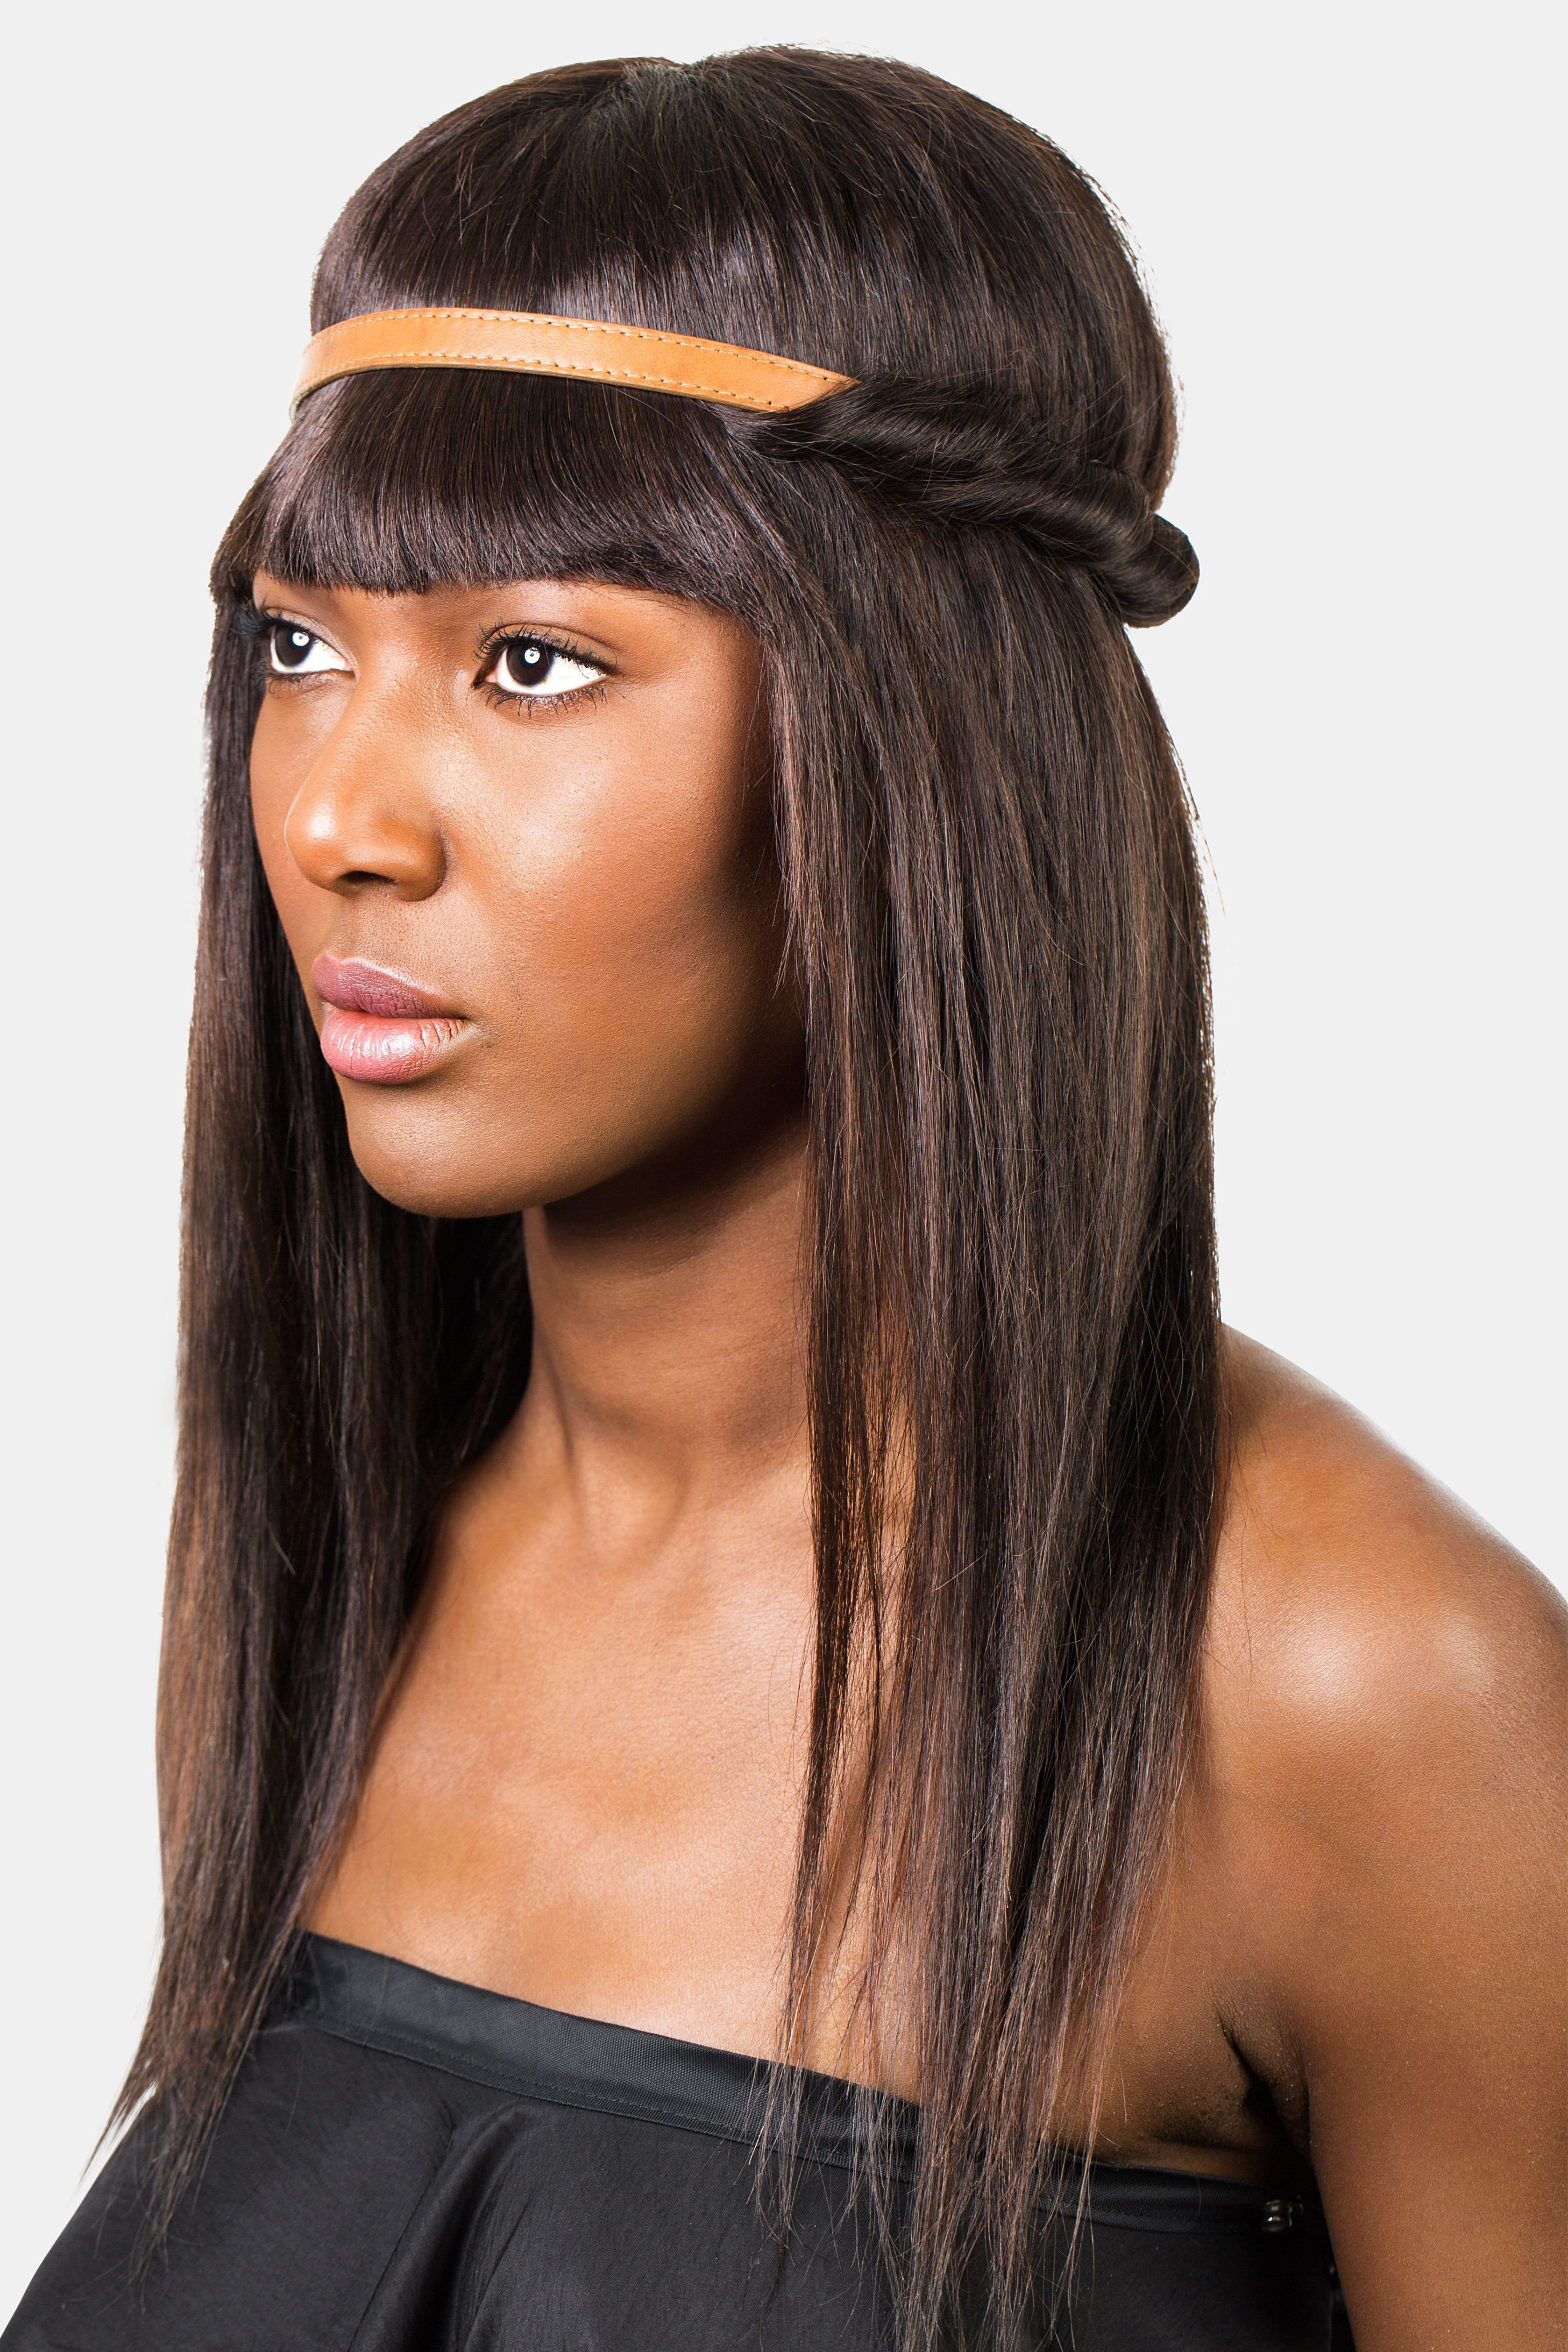 New How To Style Bangs 5 Hairstyles To Keep Your Bangs Out Ideas With Pictures